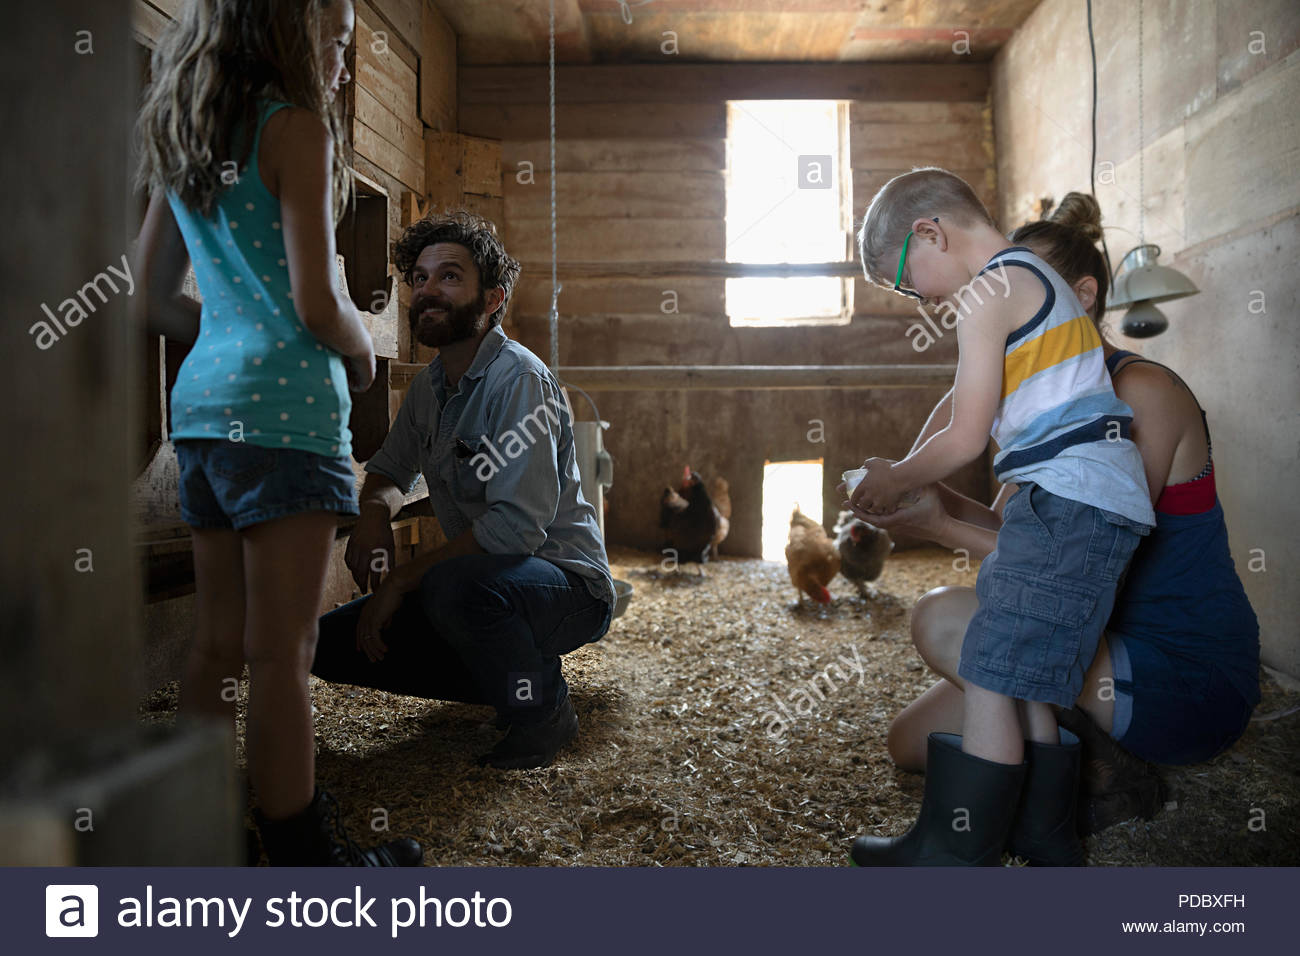 Family feeding chickens in barn - Stock Image